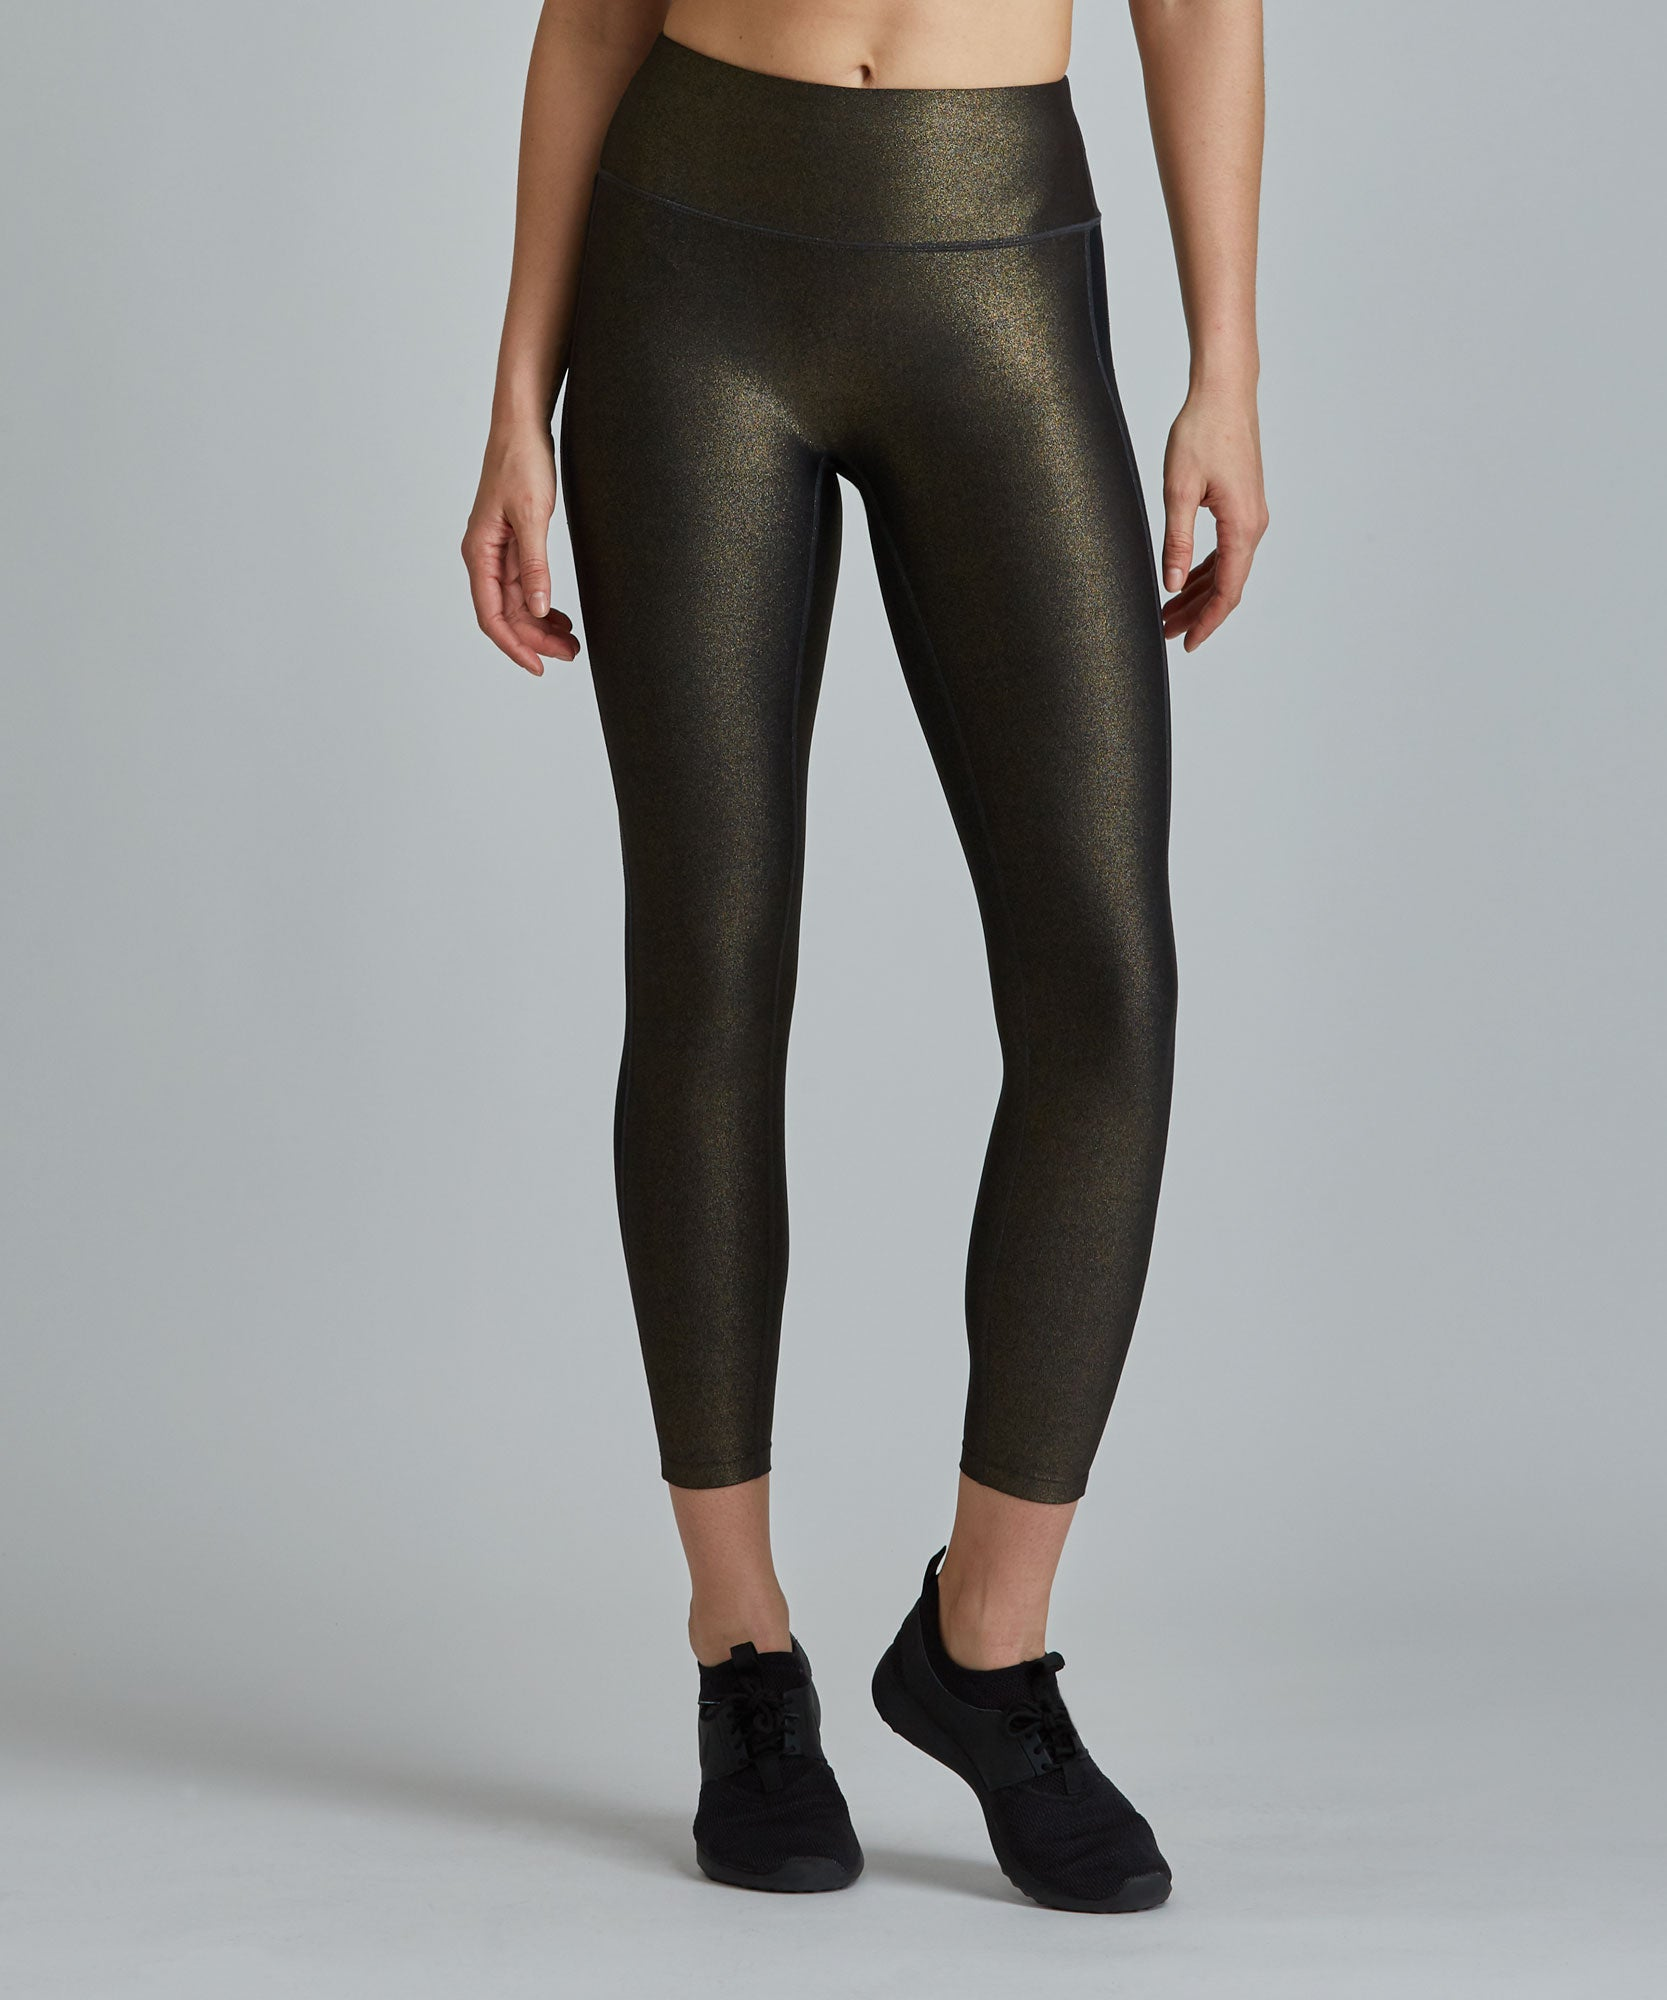 Hi-Waist Barre 7/8 Legging - Black/ Gold Shimmer